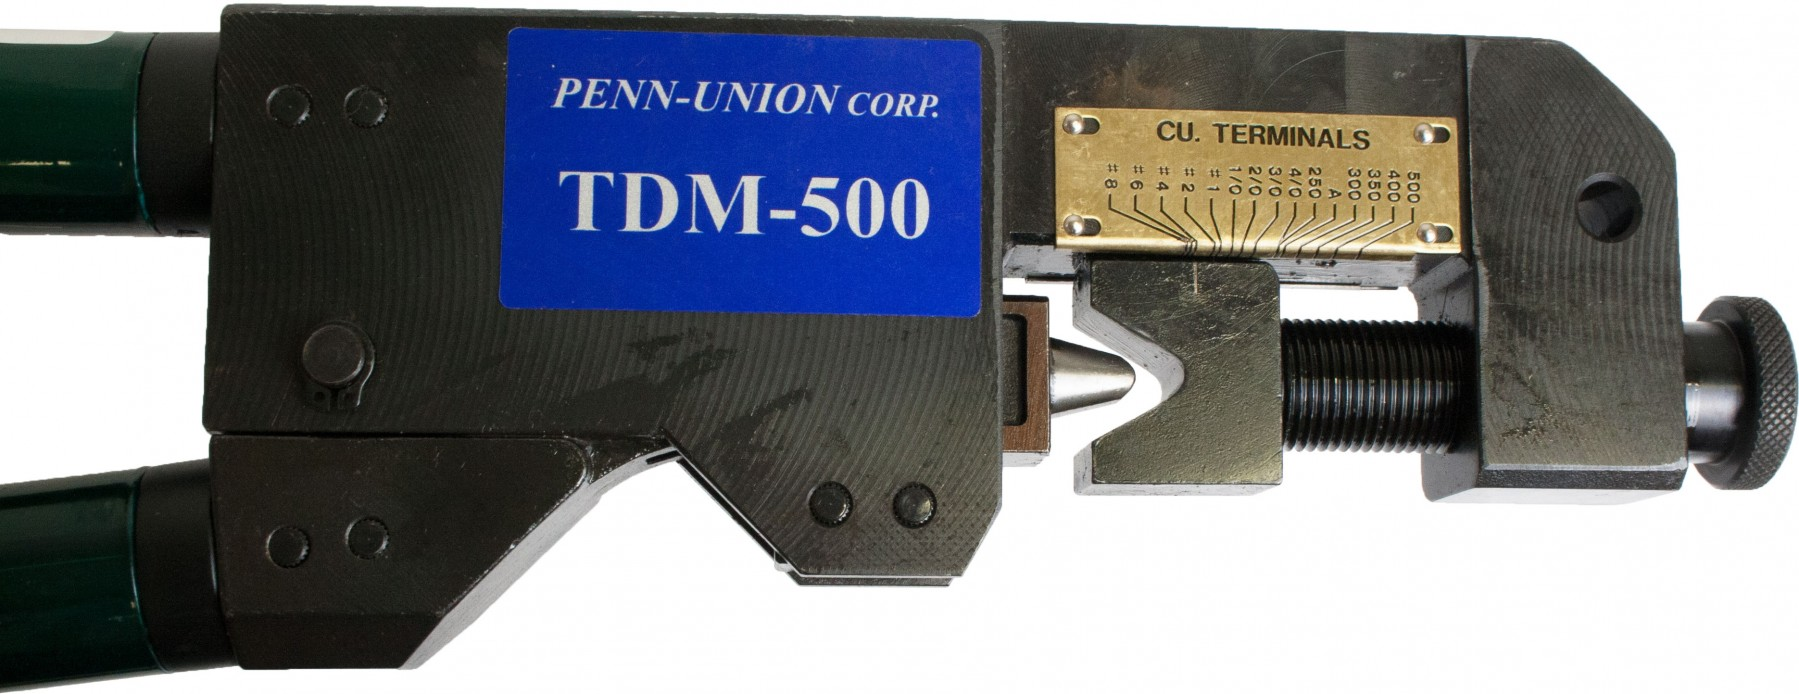 Tdm500 Penn Union Compression Crimp Tool Elecdirect Cole Herseecole Hersee Spst Onoff Toggle Switch 5582bx5582bx More Views